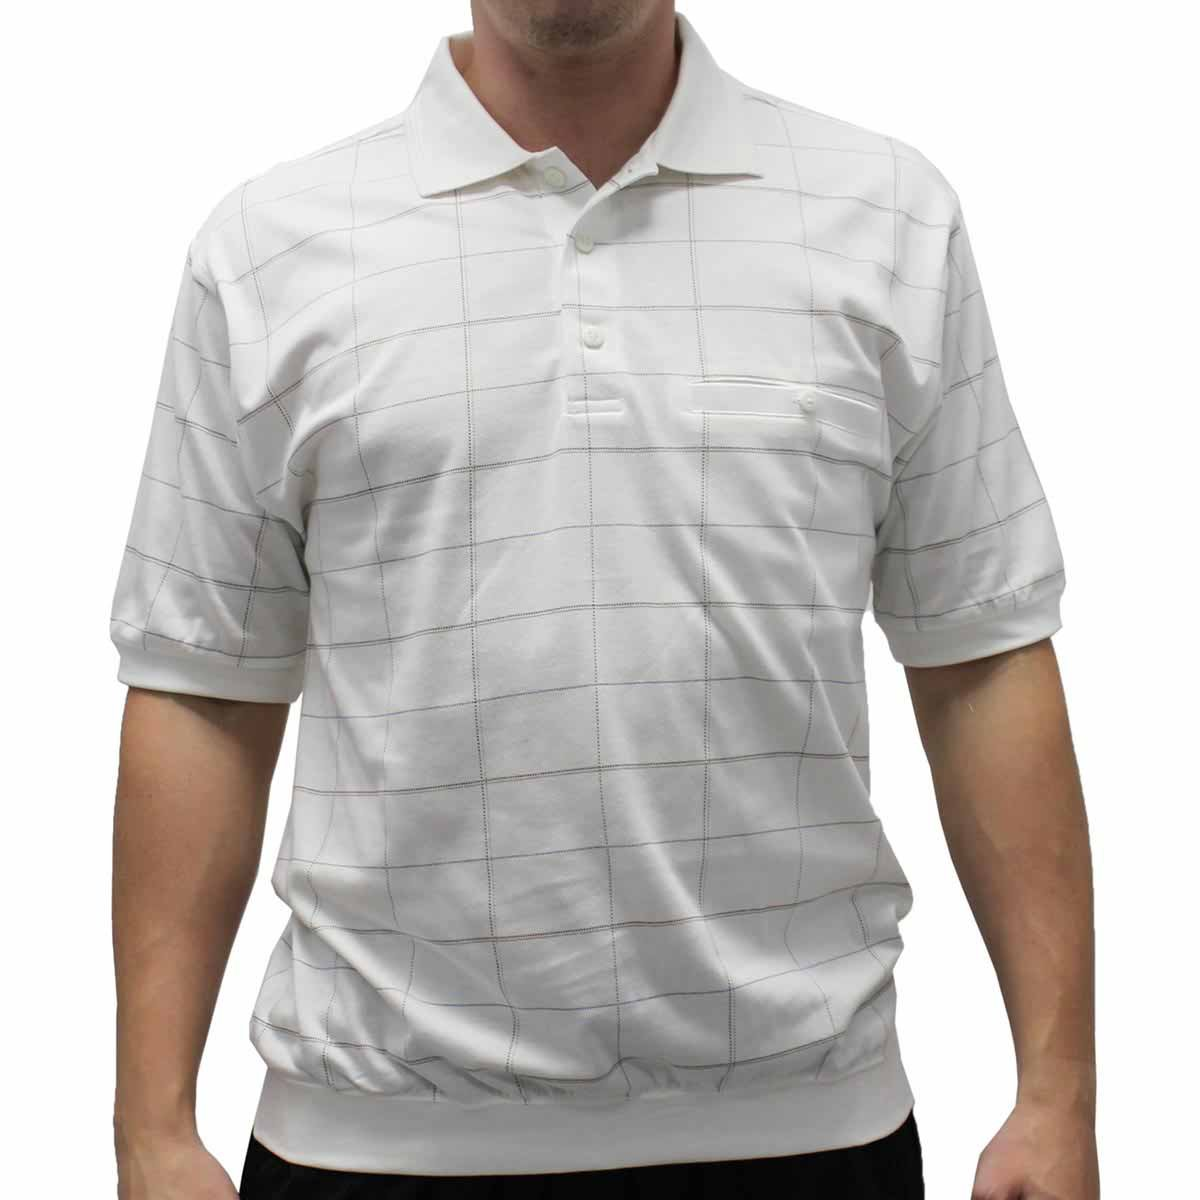 Safe Harbor French Terry Banded Bottom Polo Shirt At Amazon Mens